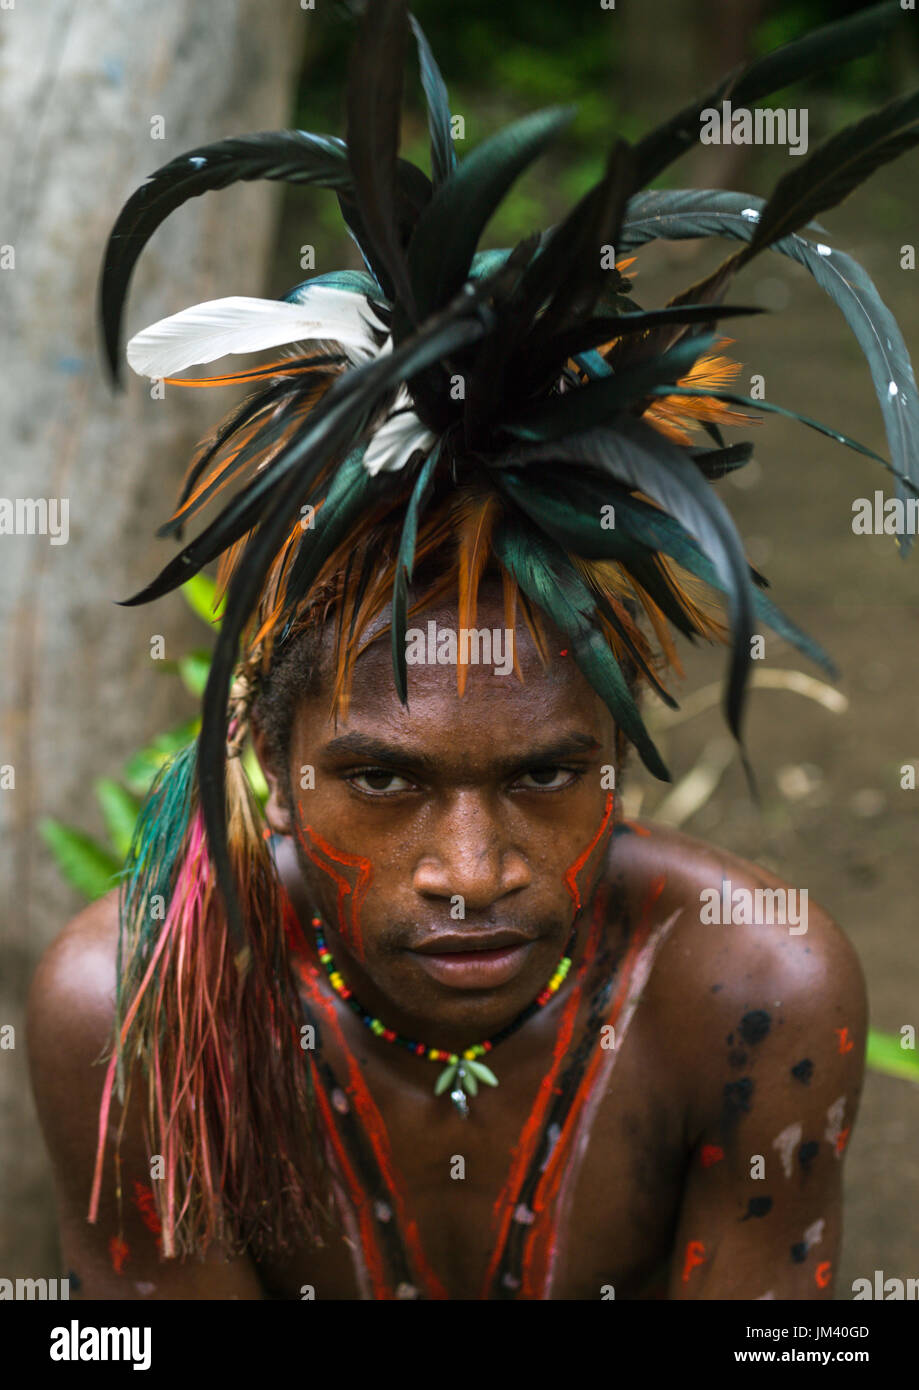 Portrait of a Small Nambas tribesman with feathers in the hair, Malekula island, Gortiengser, Vanuatu - Stock Image